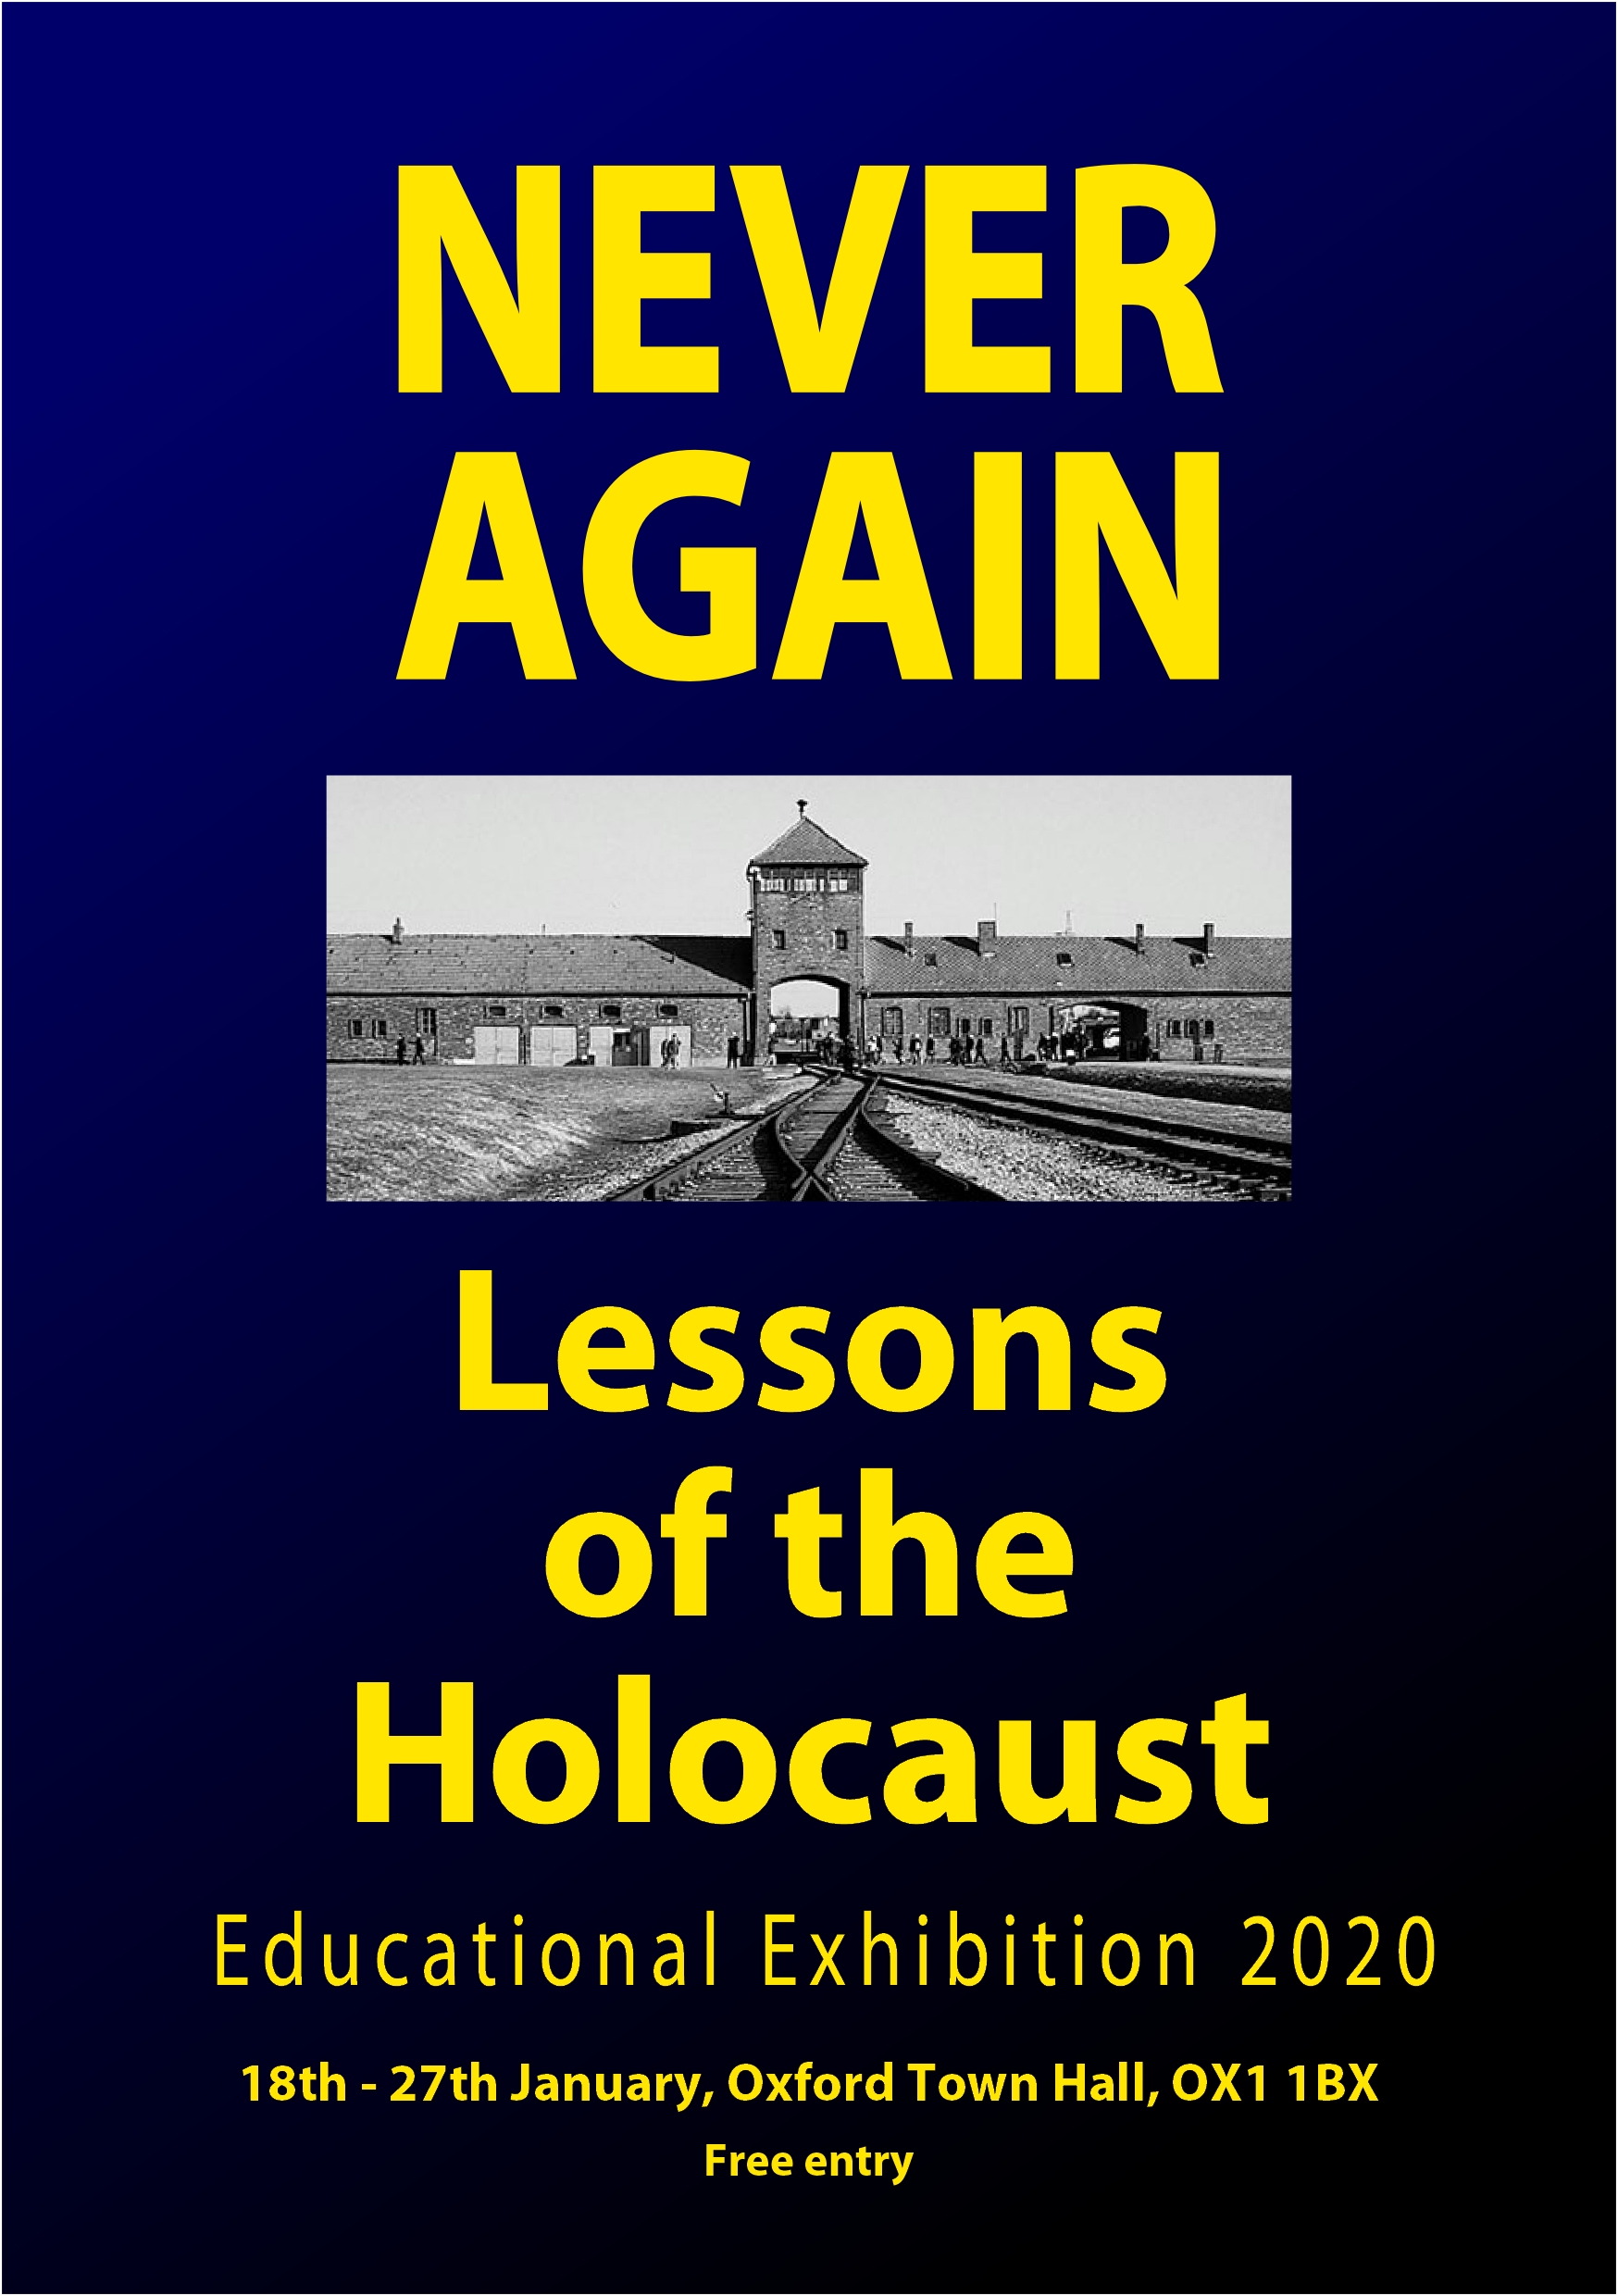 'Never Again - Lessons of the Holocaust' Educational Exhibition